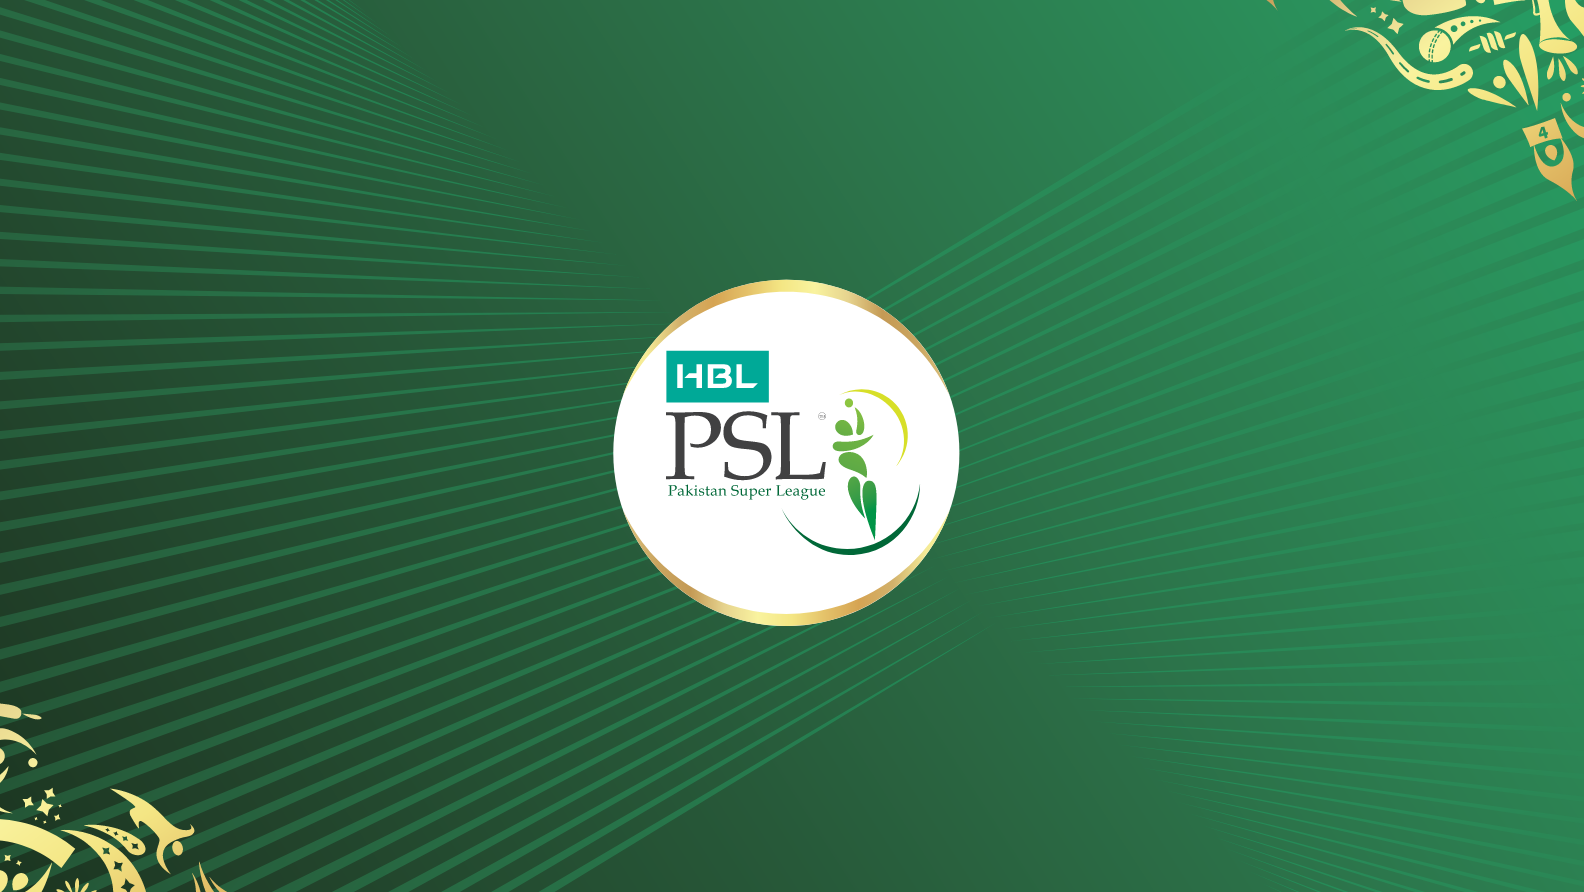 Next PSL tournament will be held in Pakistan:Fawad Chaudhry, PSL News